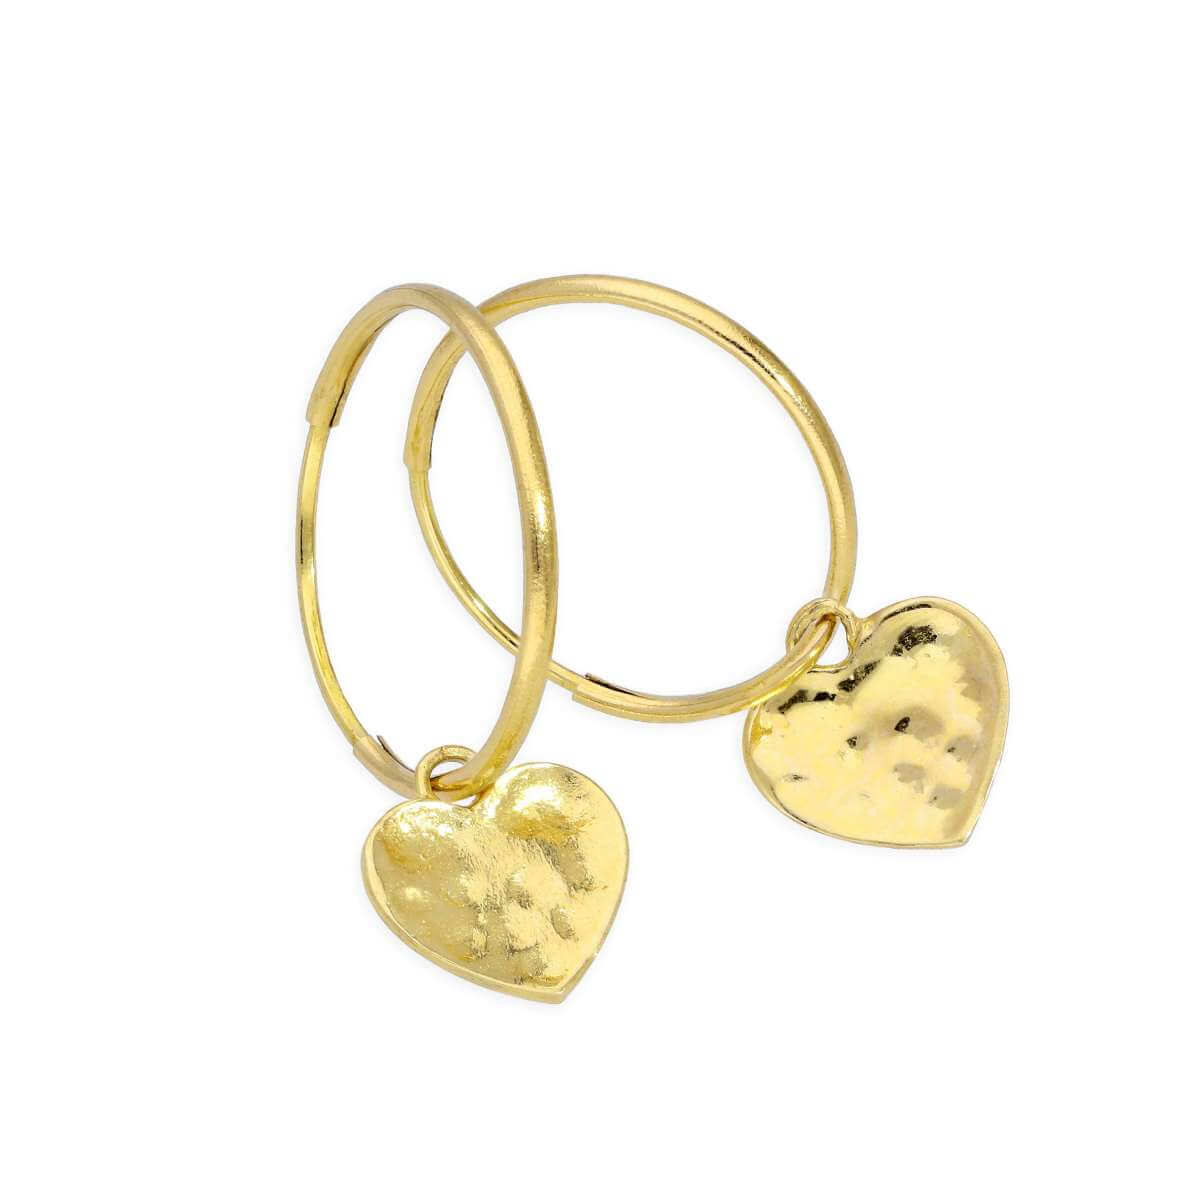 9ct Gold 10mm Charm Hoop Hammered Heart Earrings